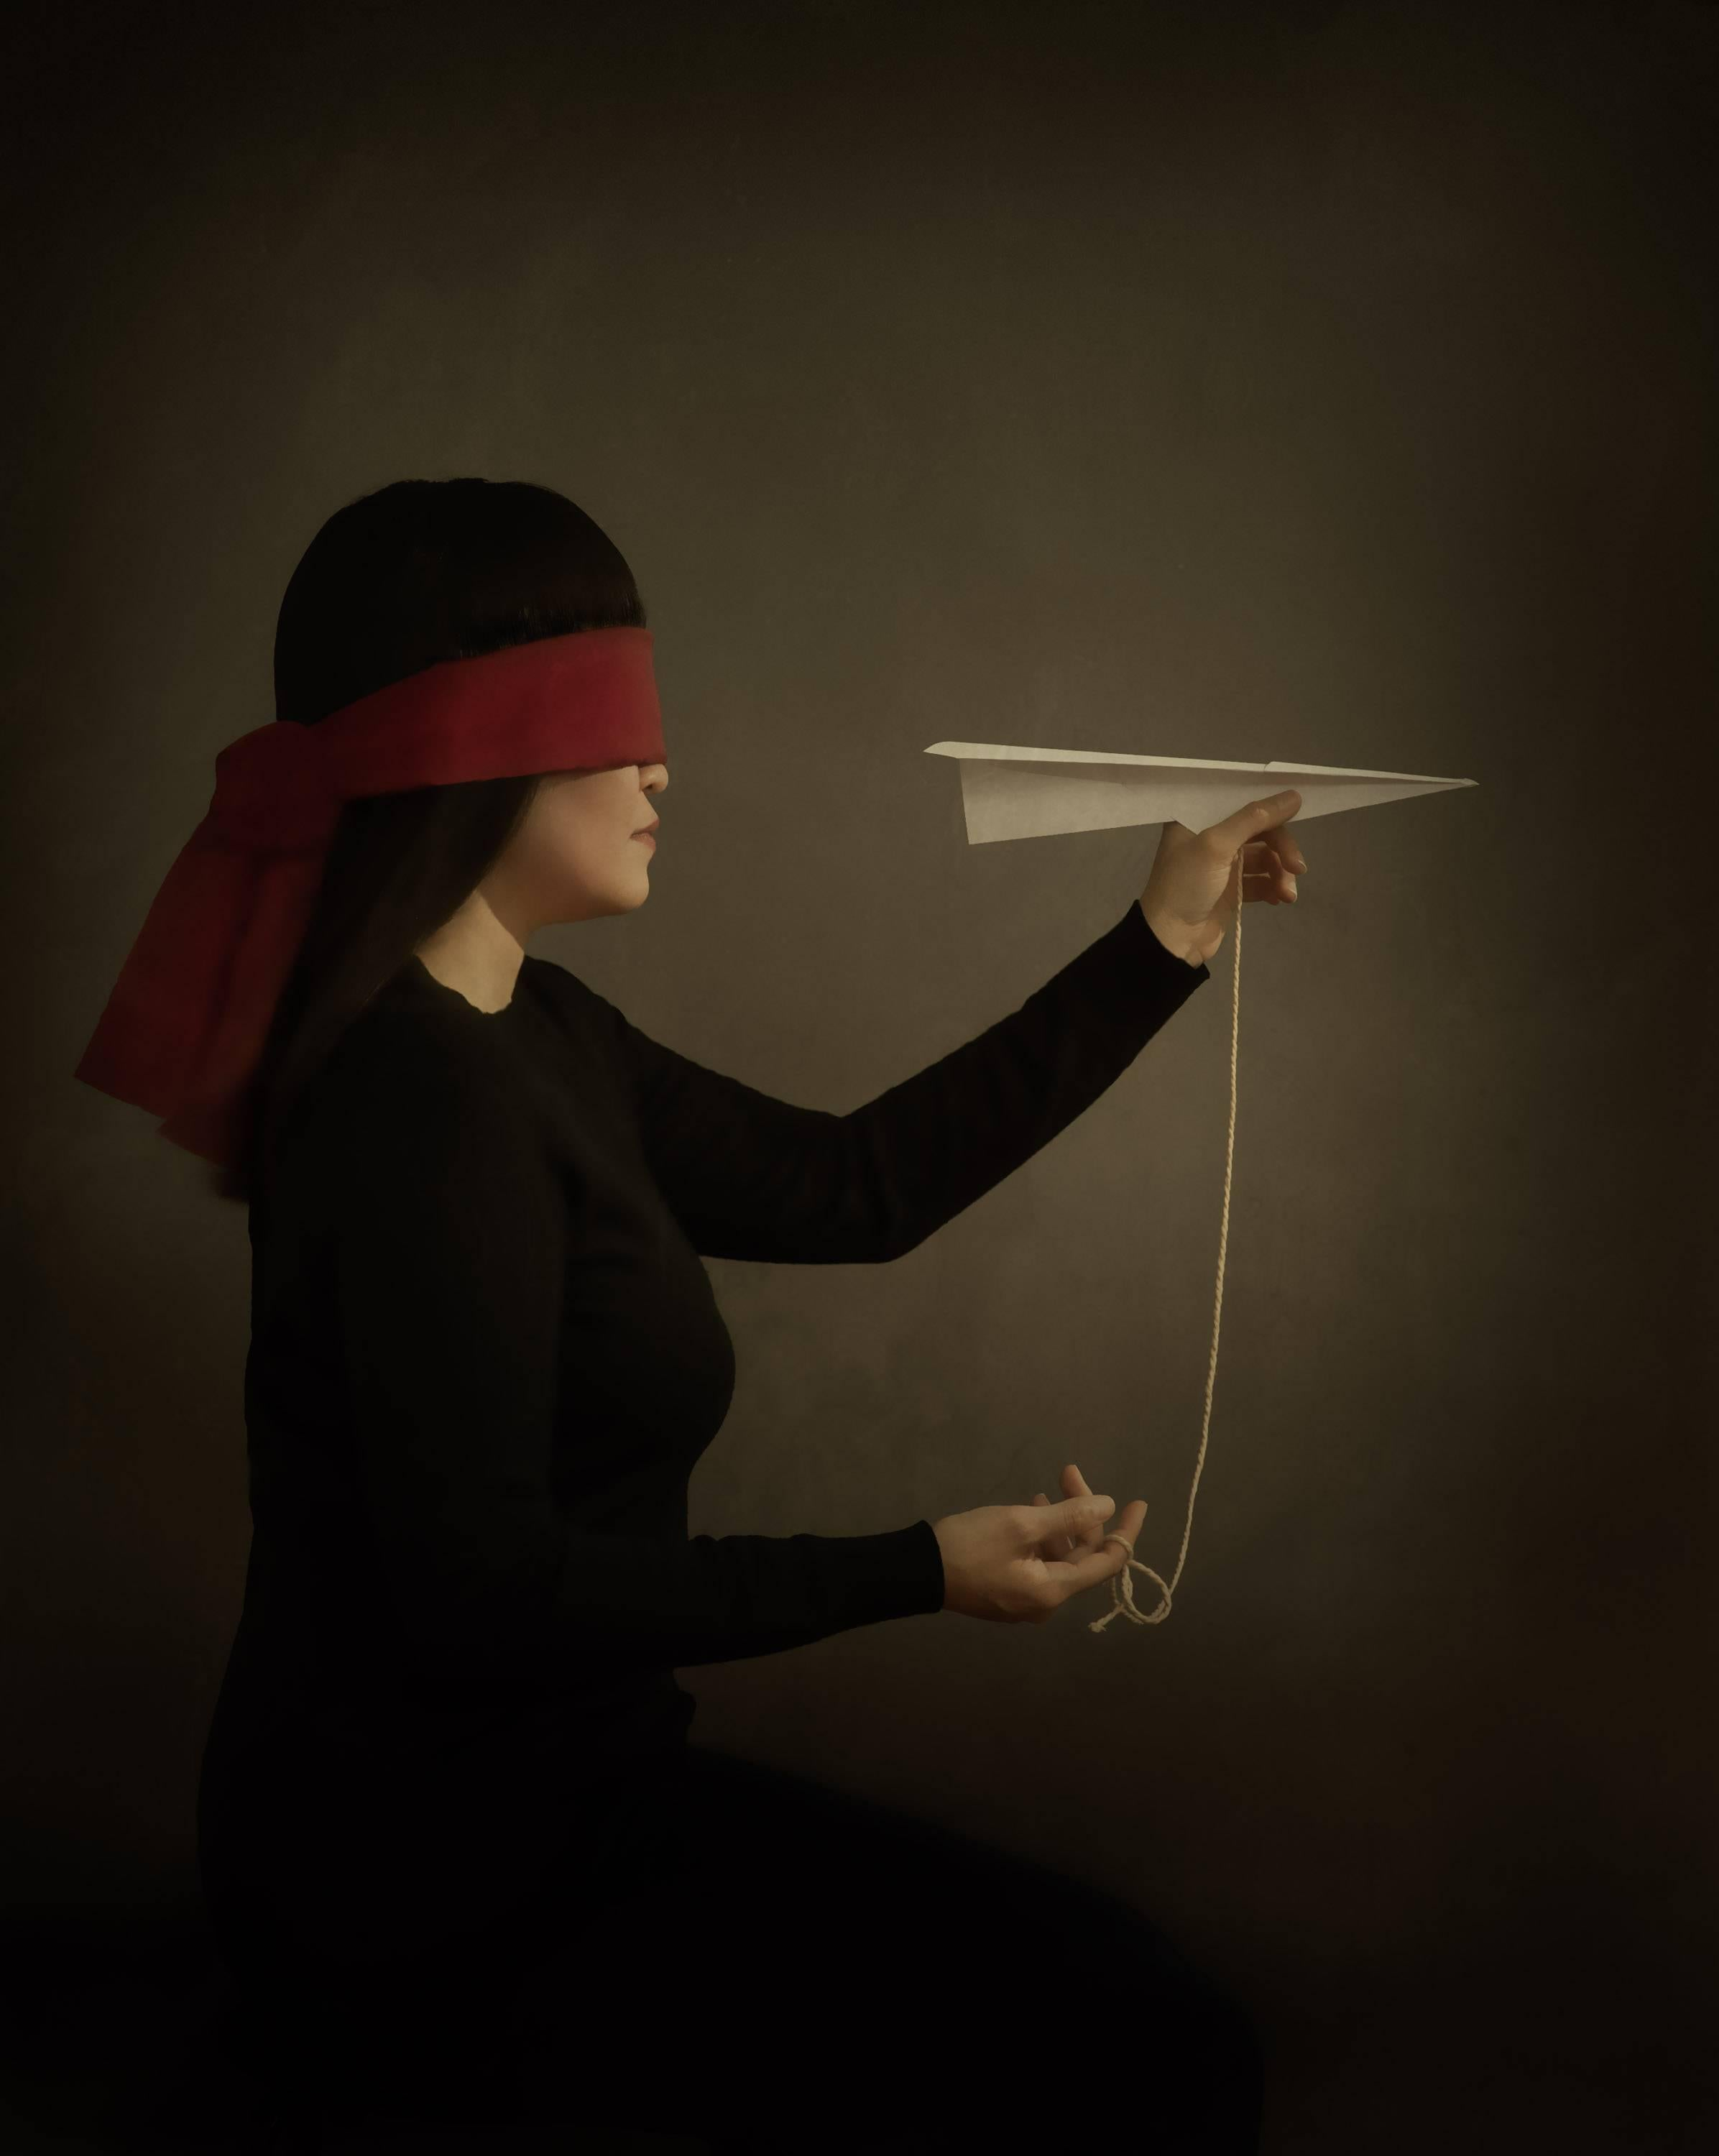 """""""Uncertainty"""", Illustrative Photography, Blindfolded Figure, Paper Airplane"""